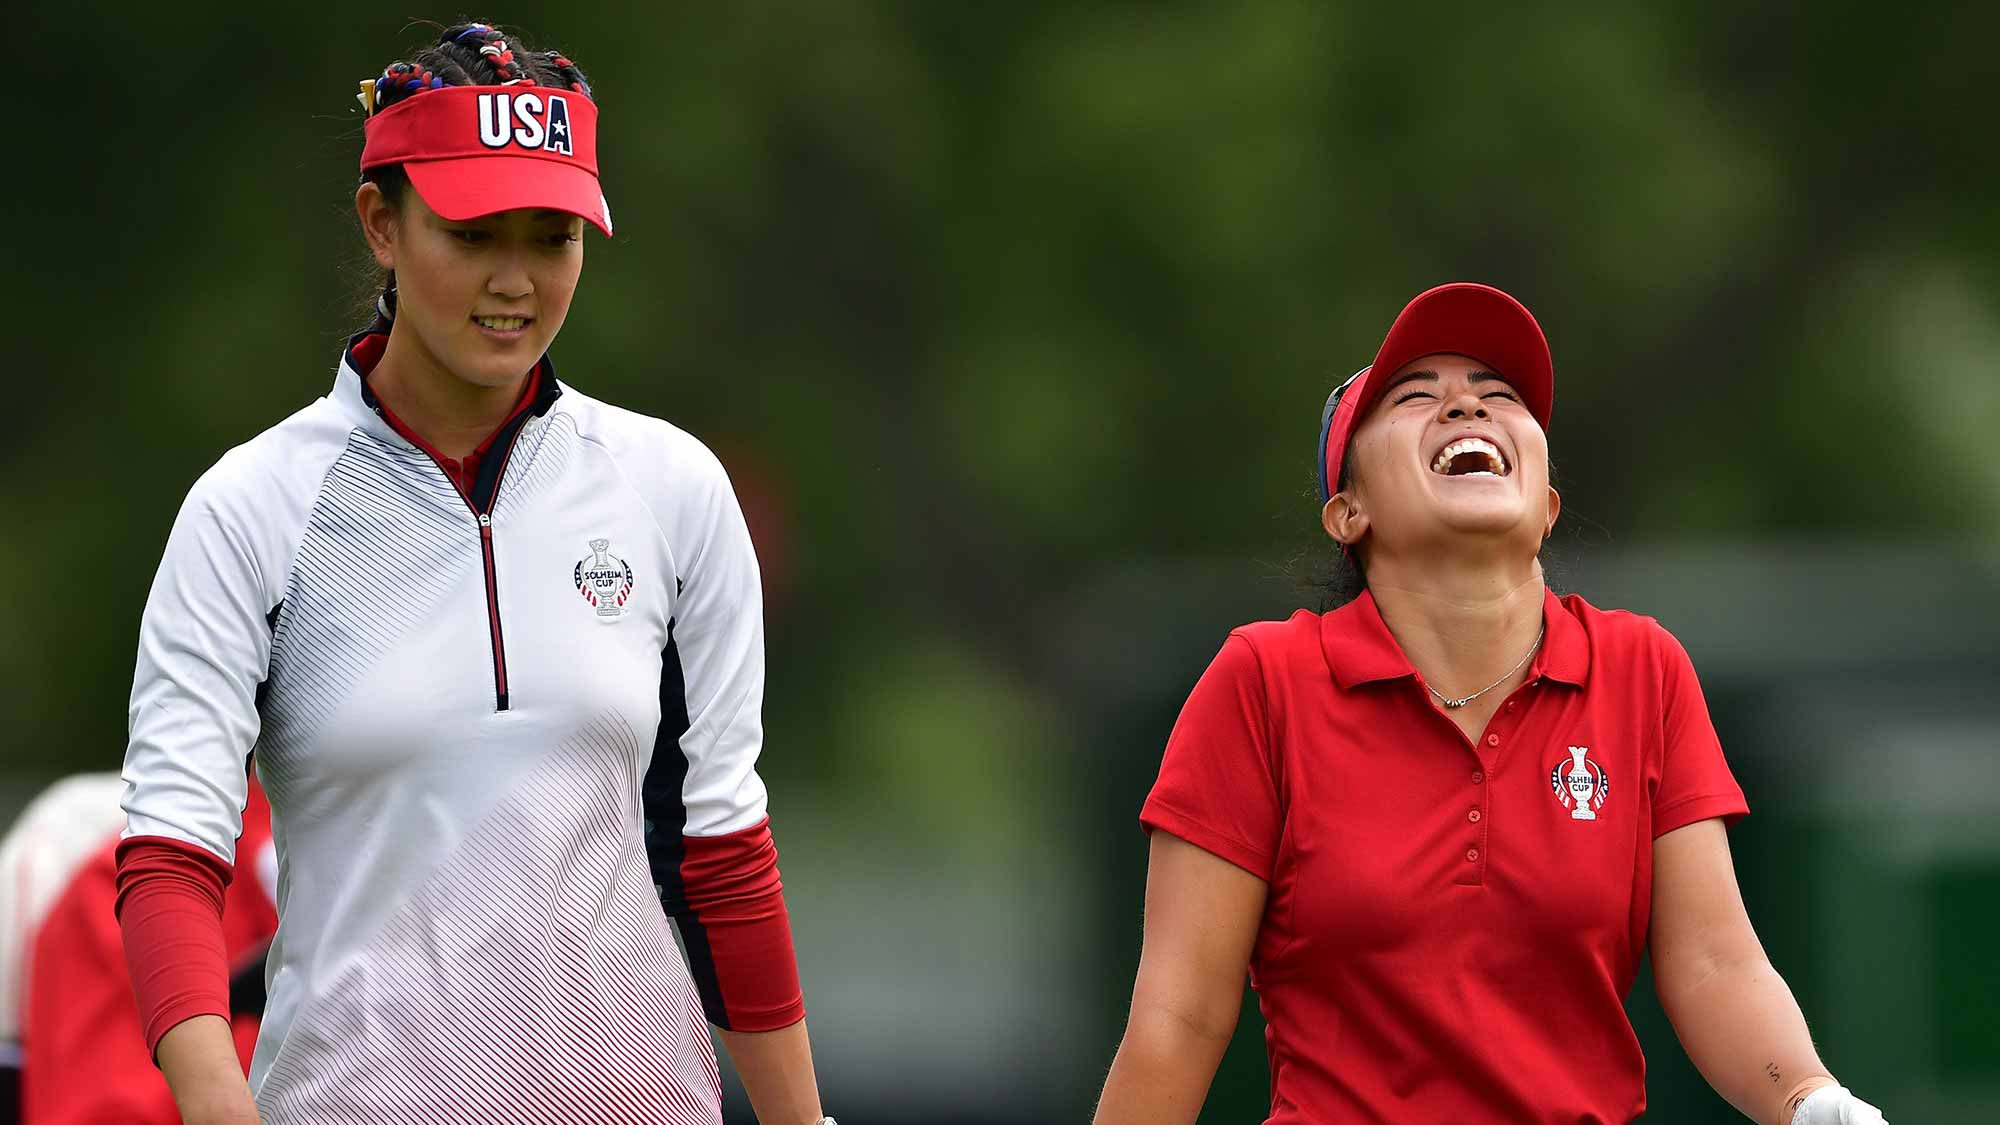 Suzann Pettersen out of Solheim Cup, Matthew drafted in by Europe